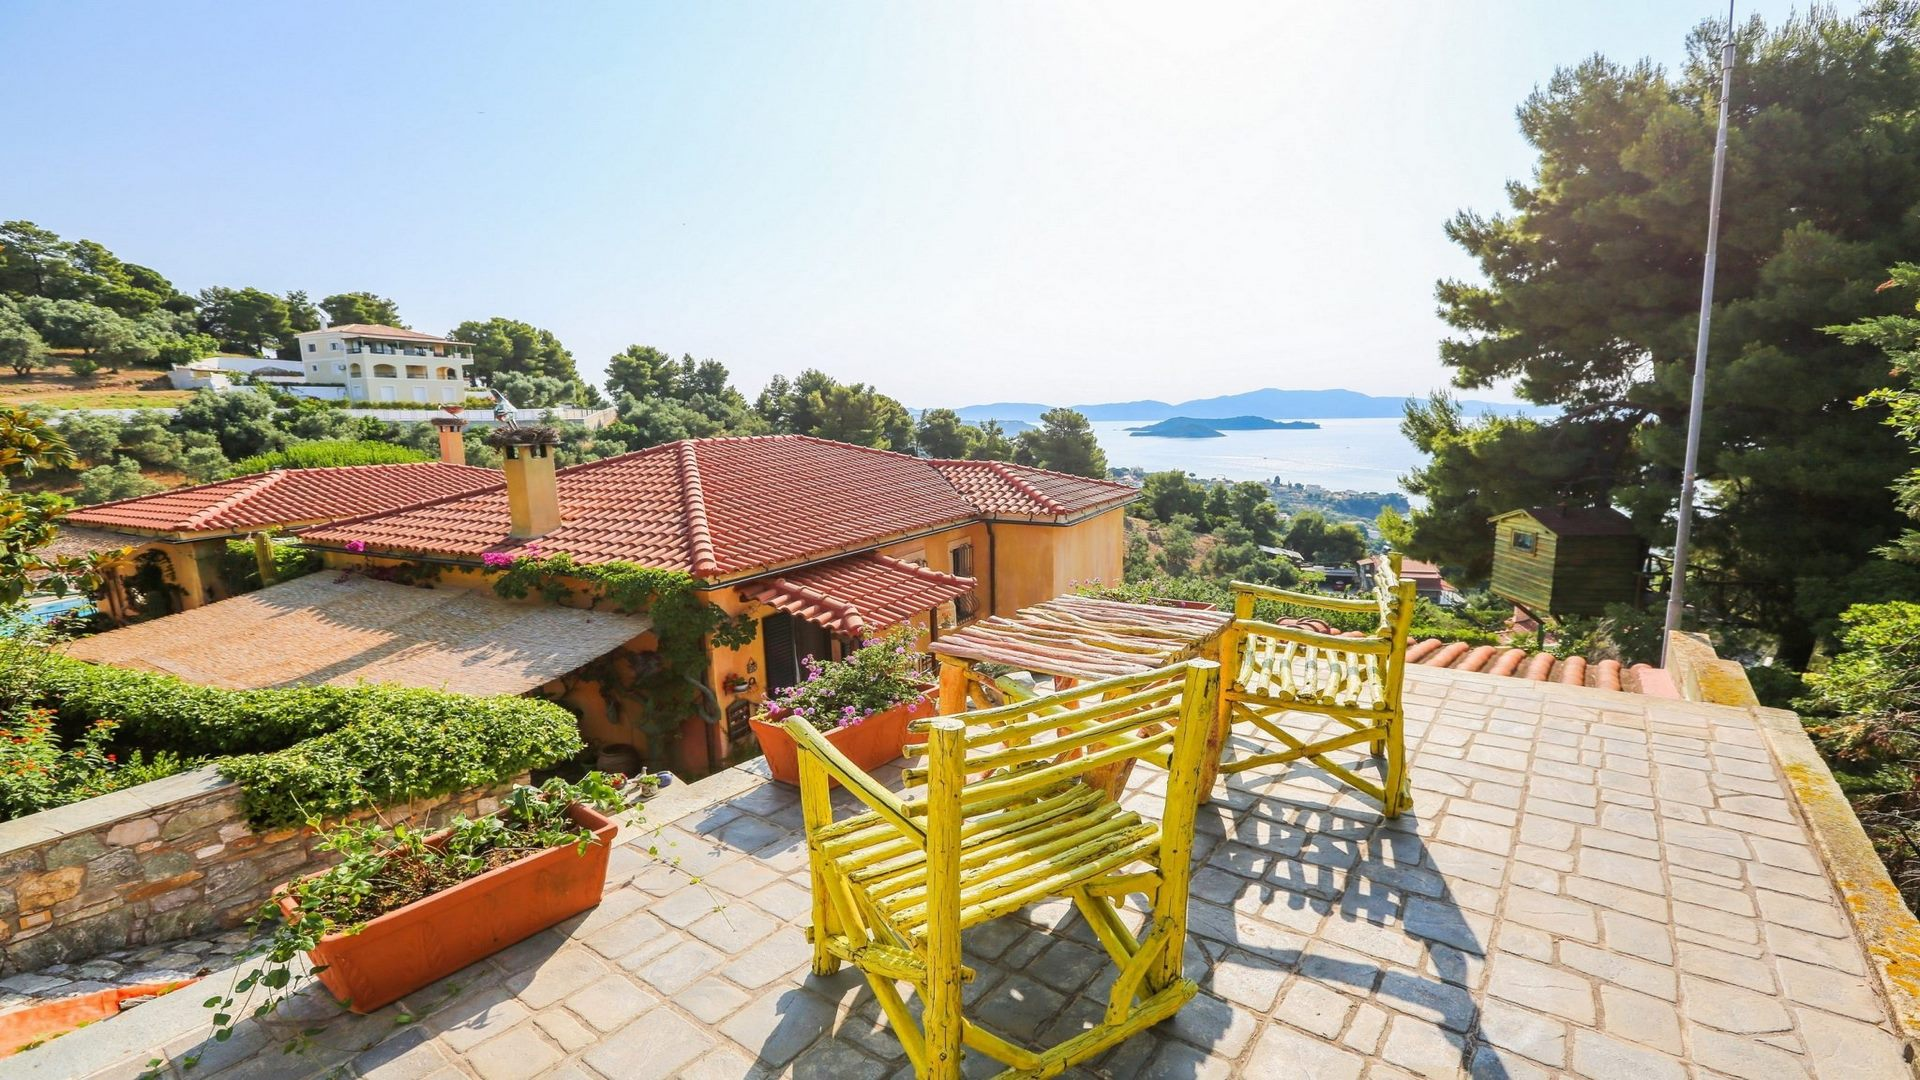 Villa on the island Skiathos